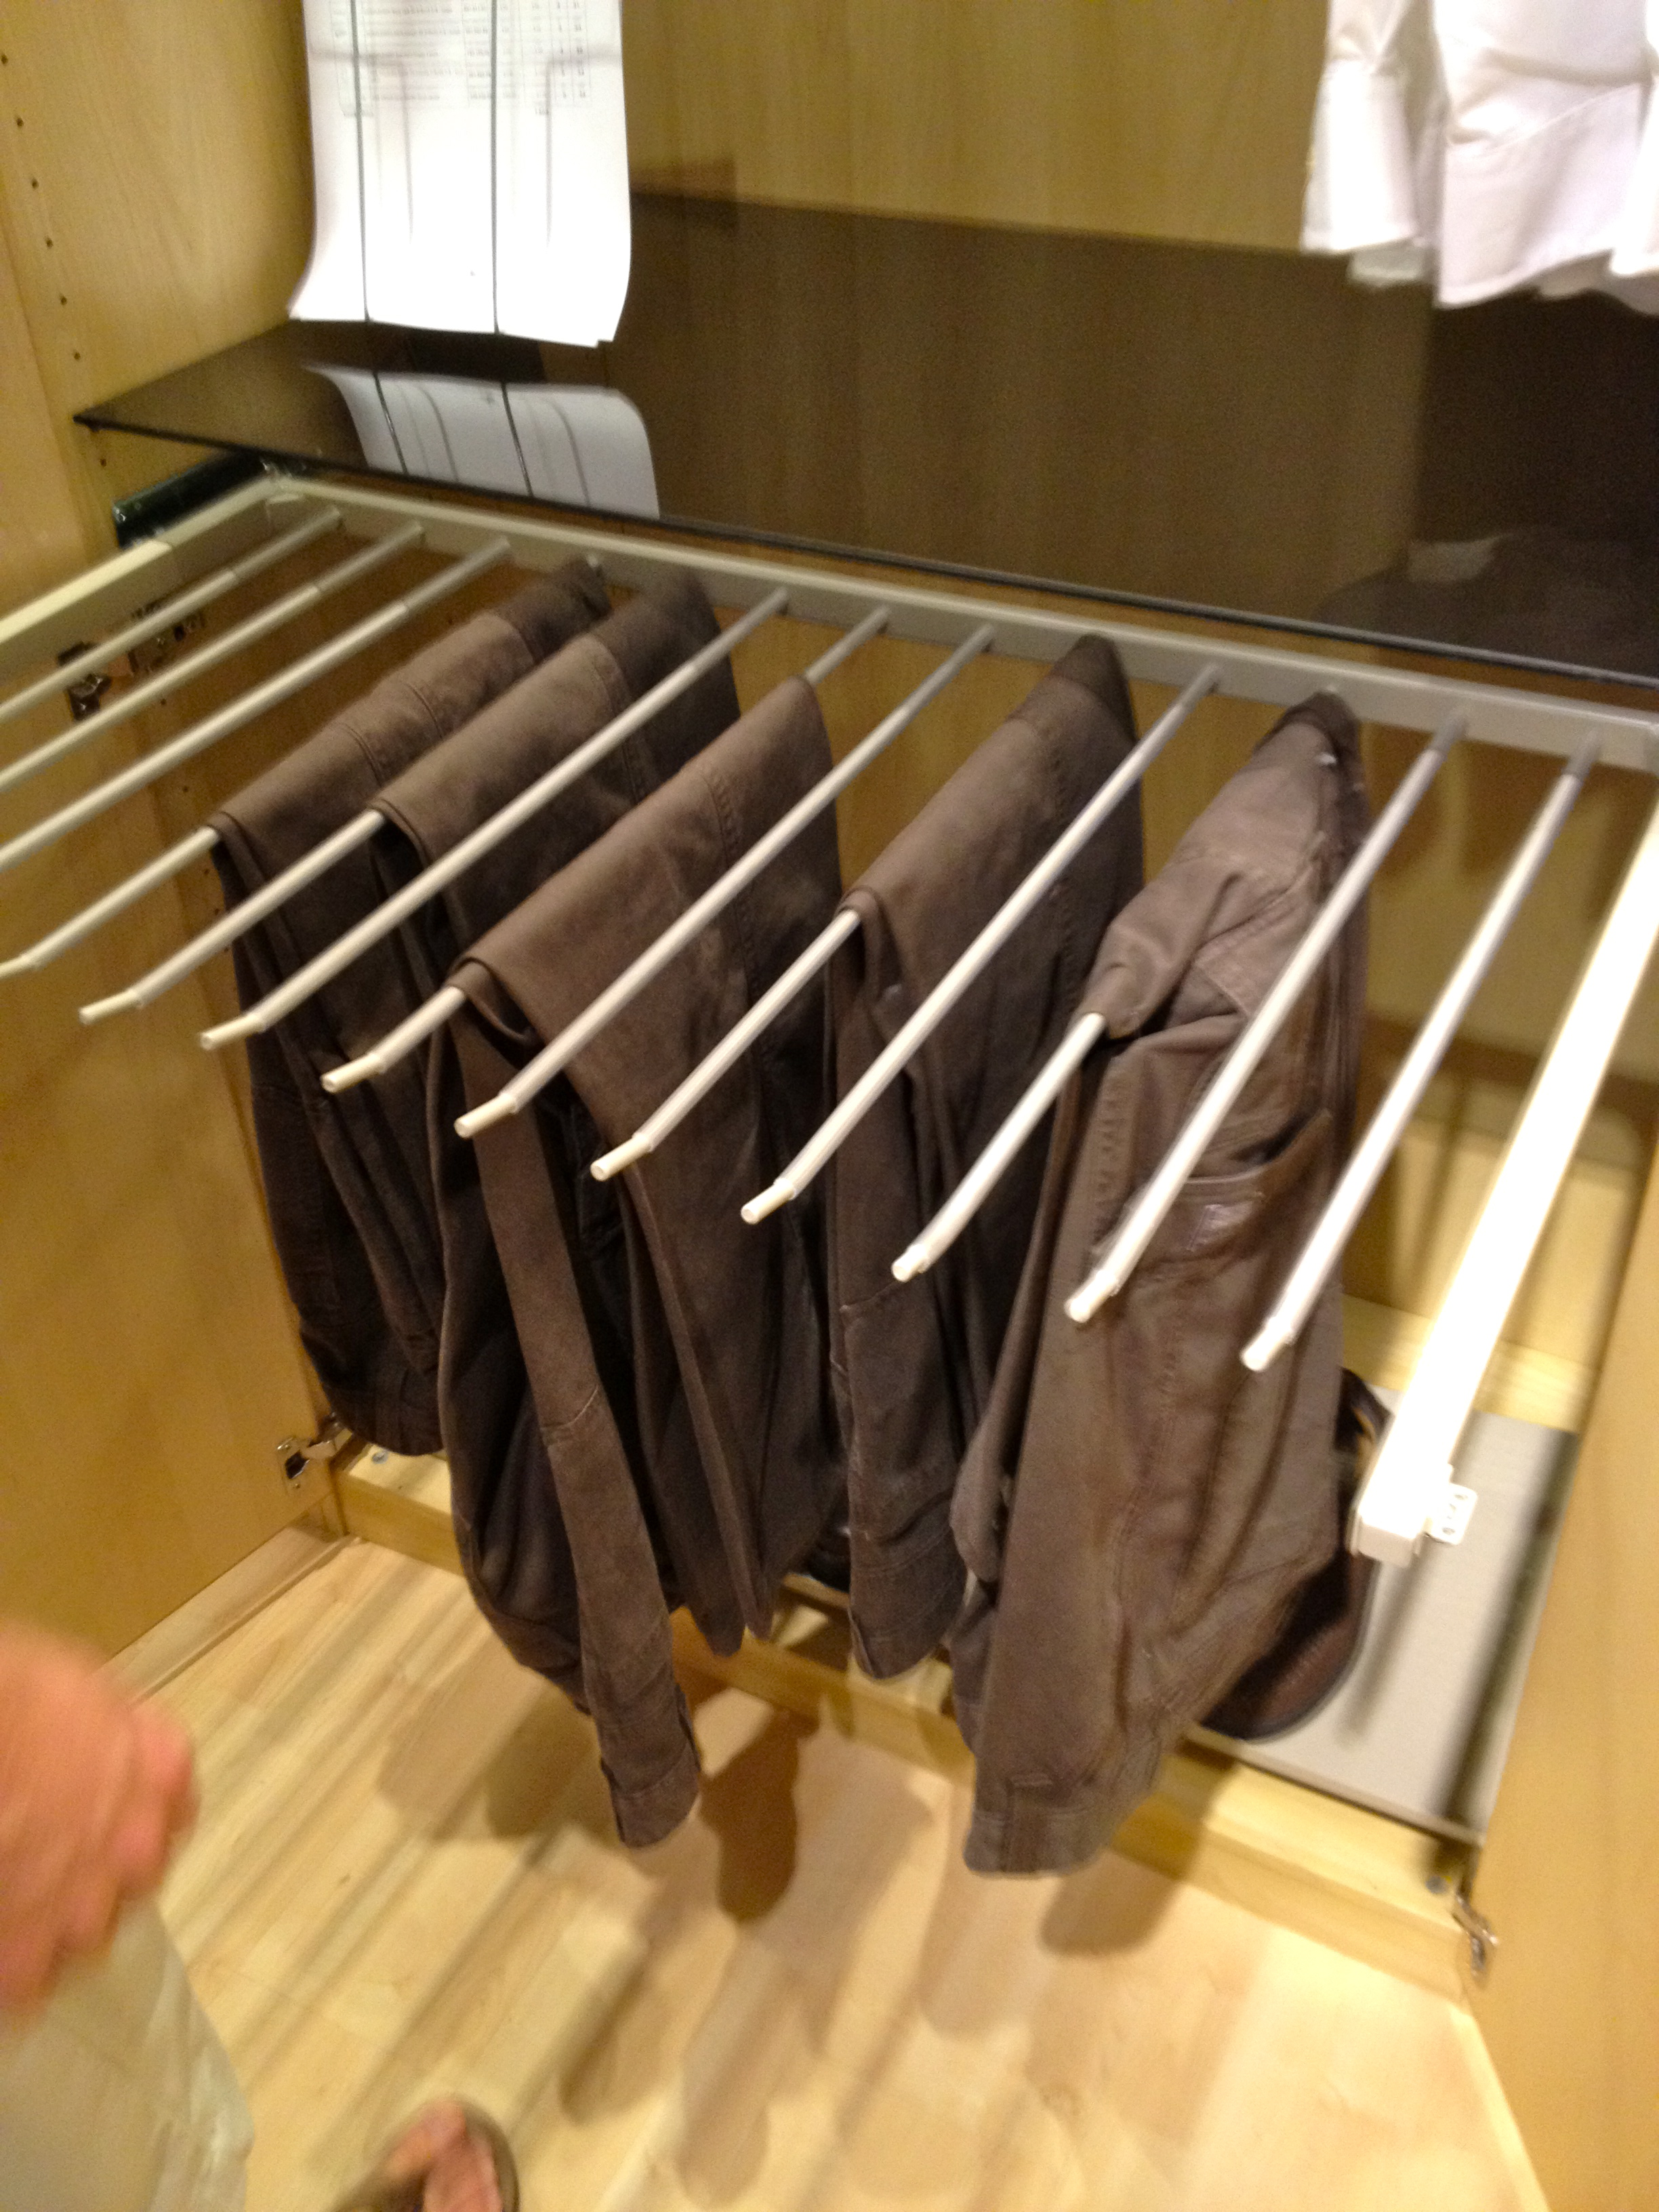 i pants double organized space hangers rack mbr saving and saver became you too closet dreams with organizing really might snob appealing ideas swinging bedroom hanger how closets a